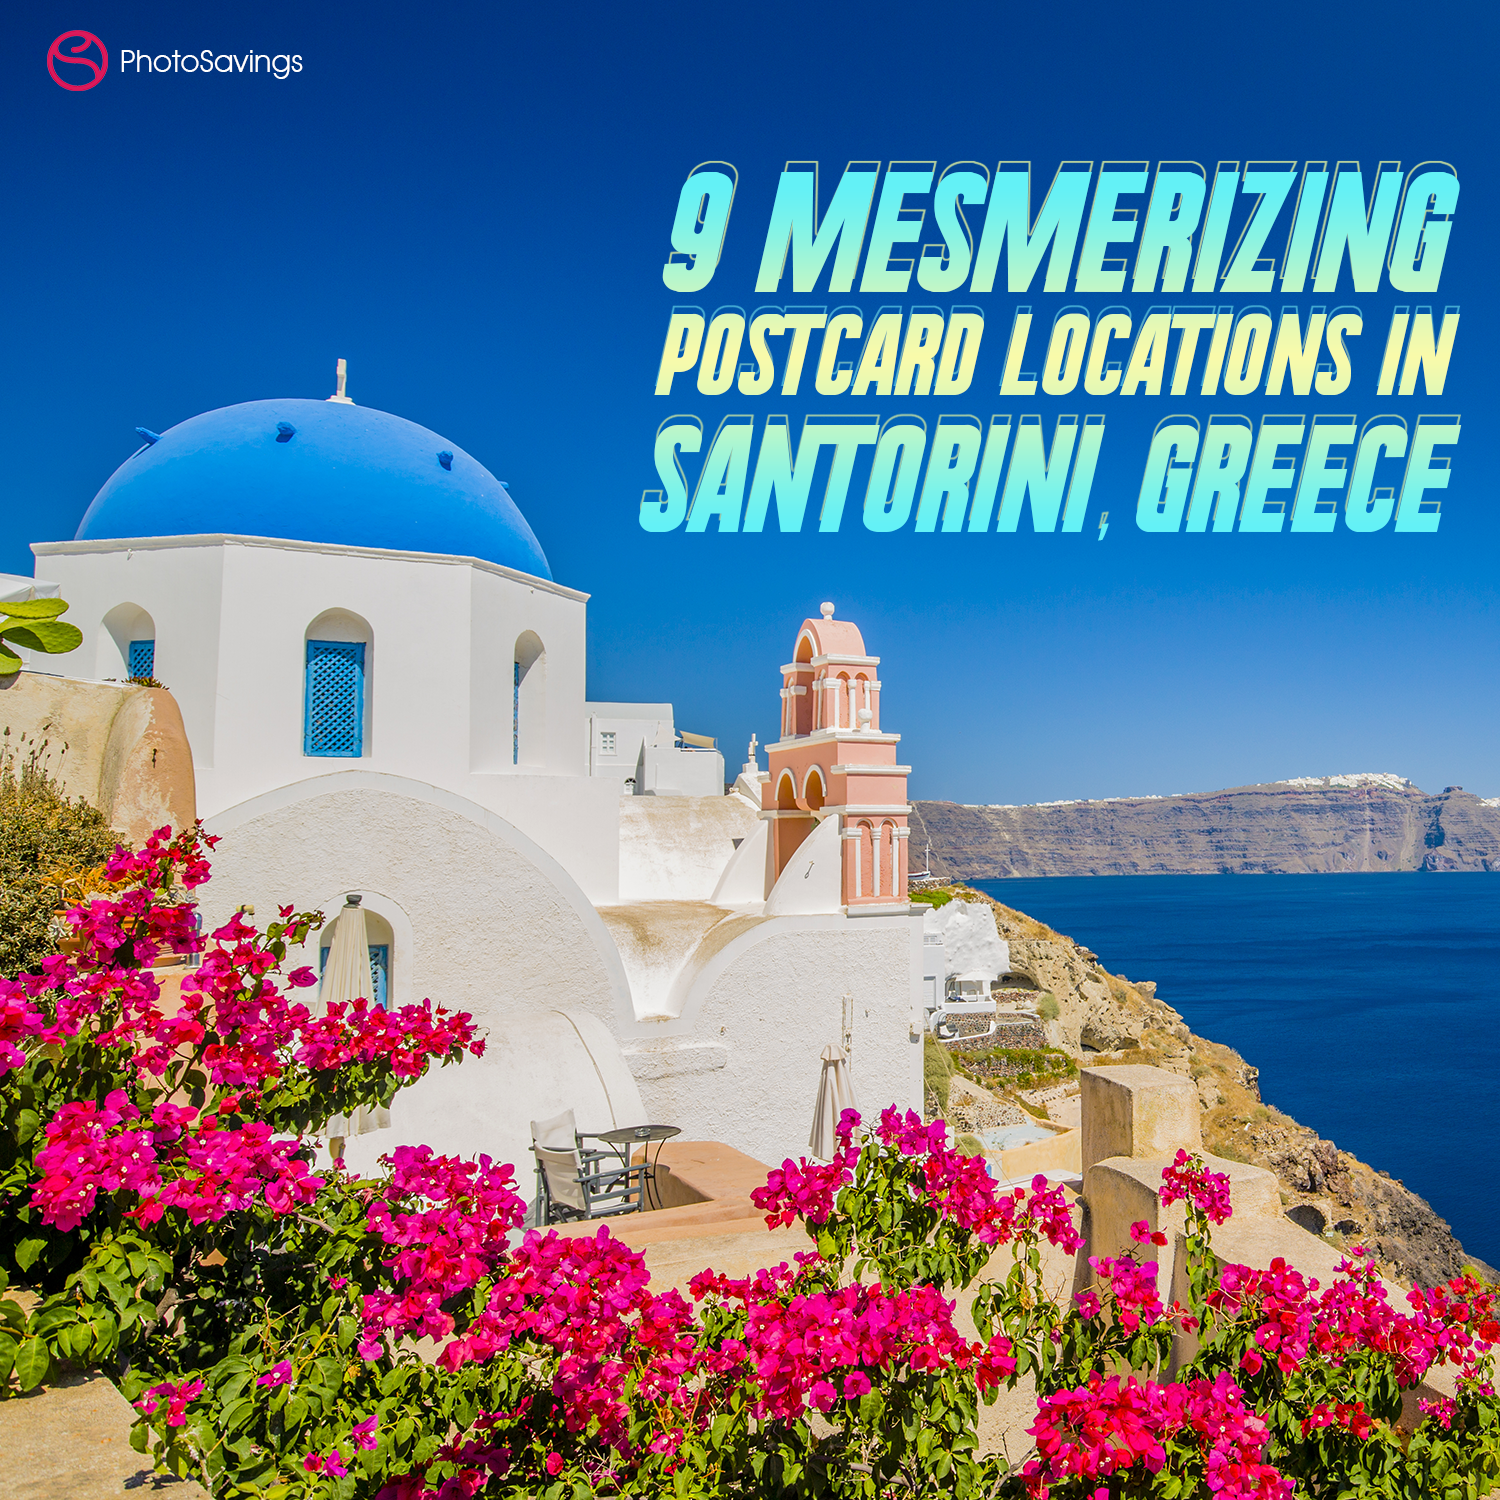 9 Mesmerizing Postcard Locations in Santorini, Greece